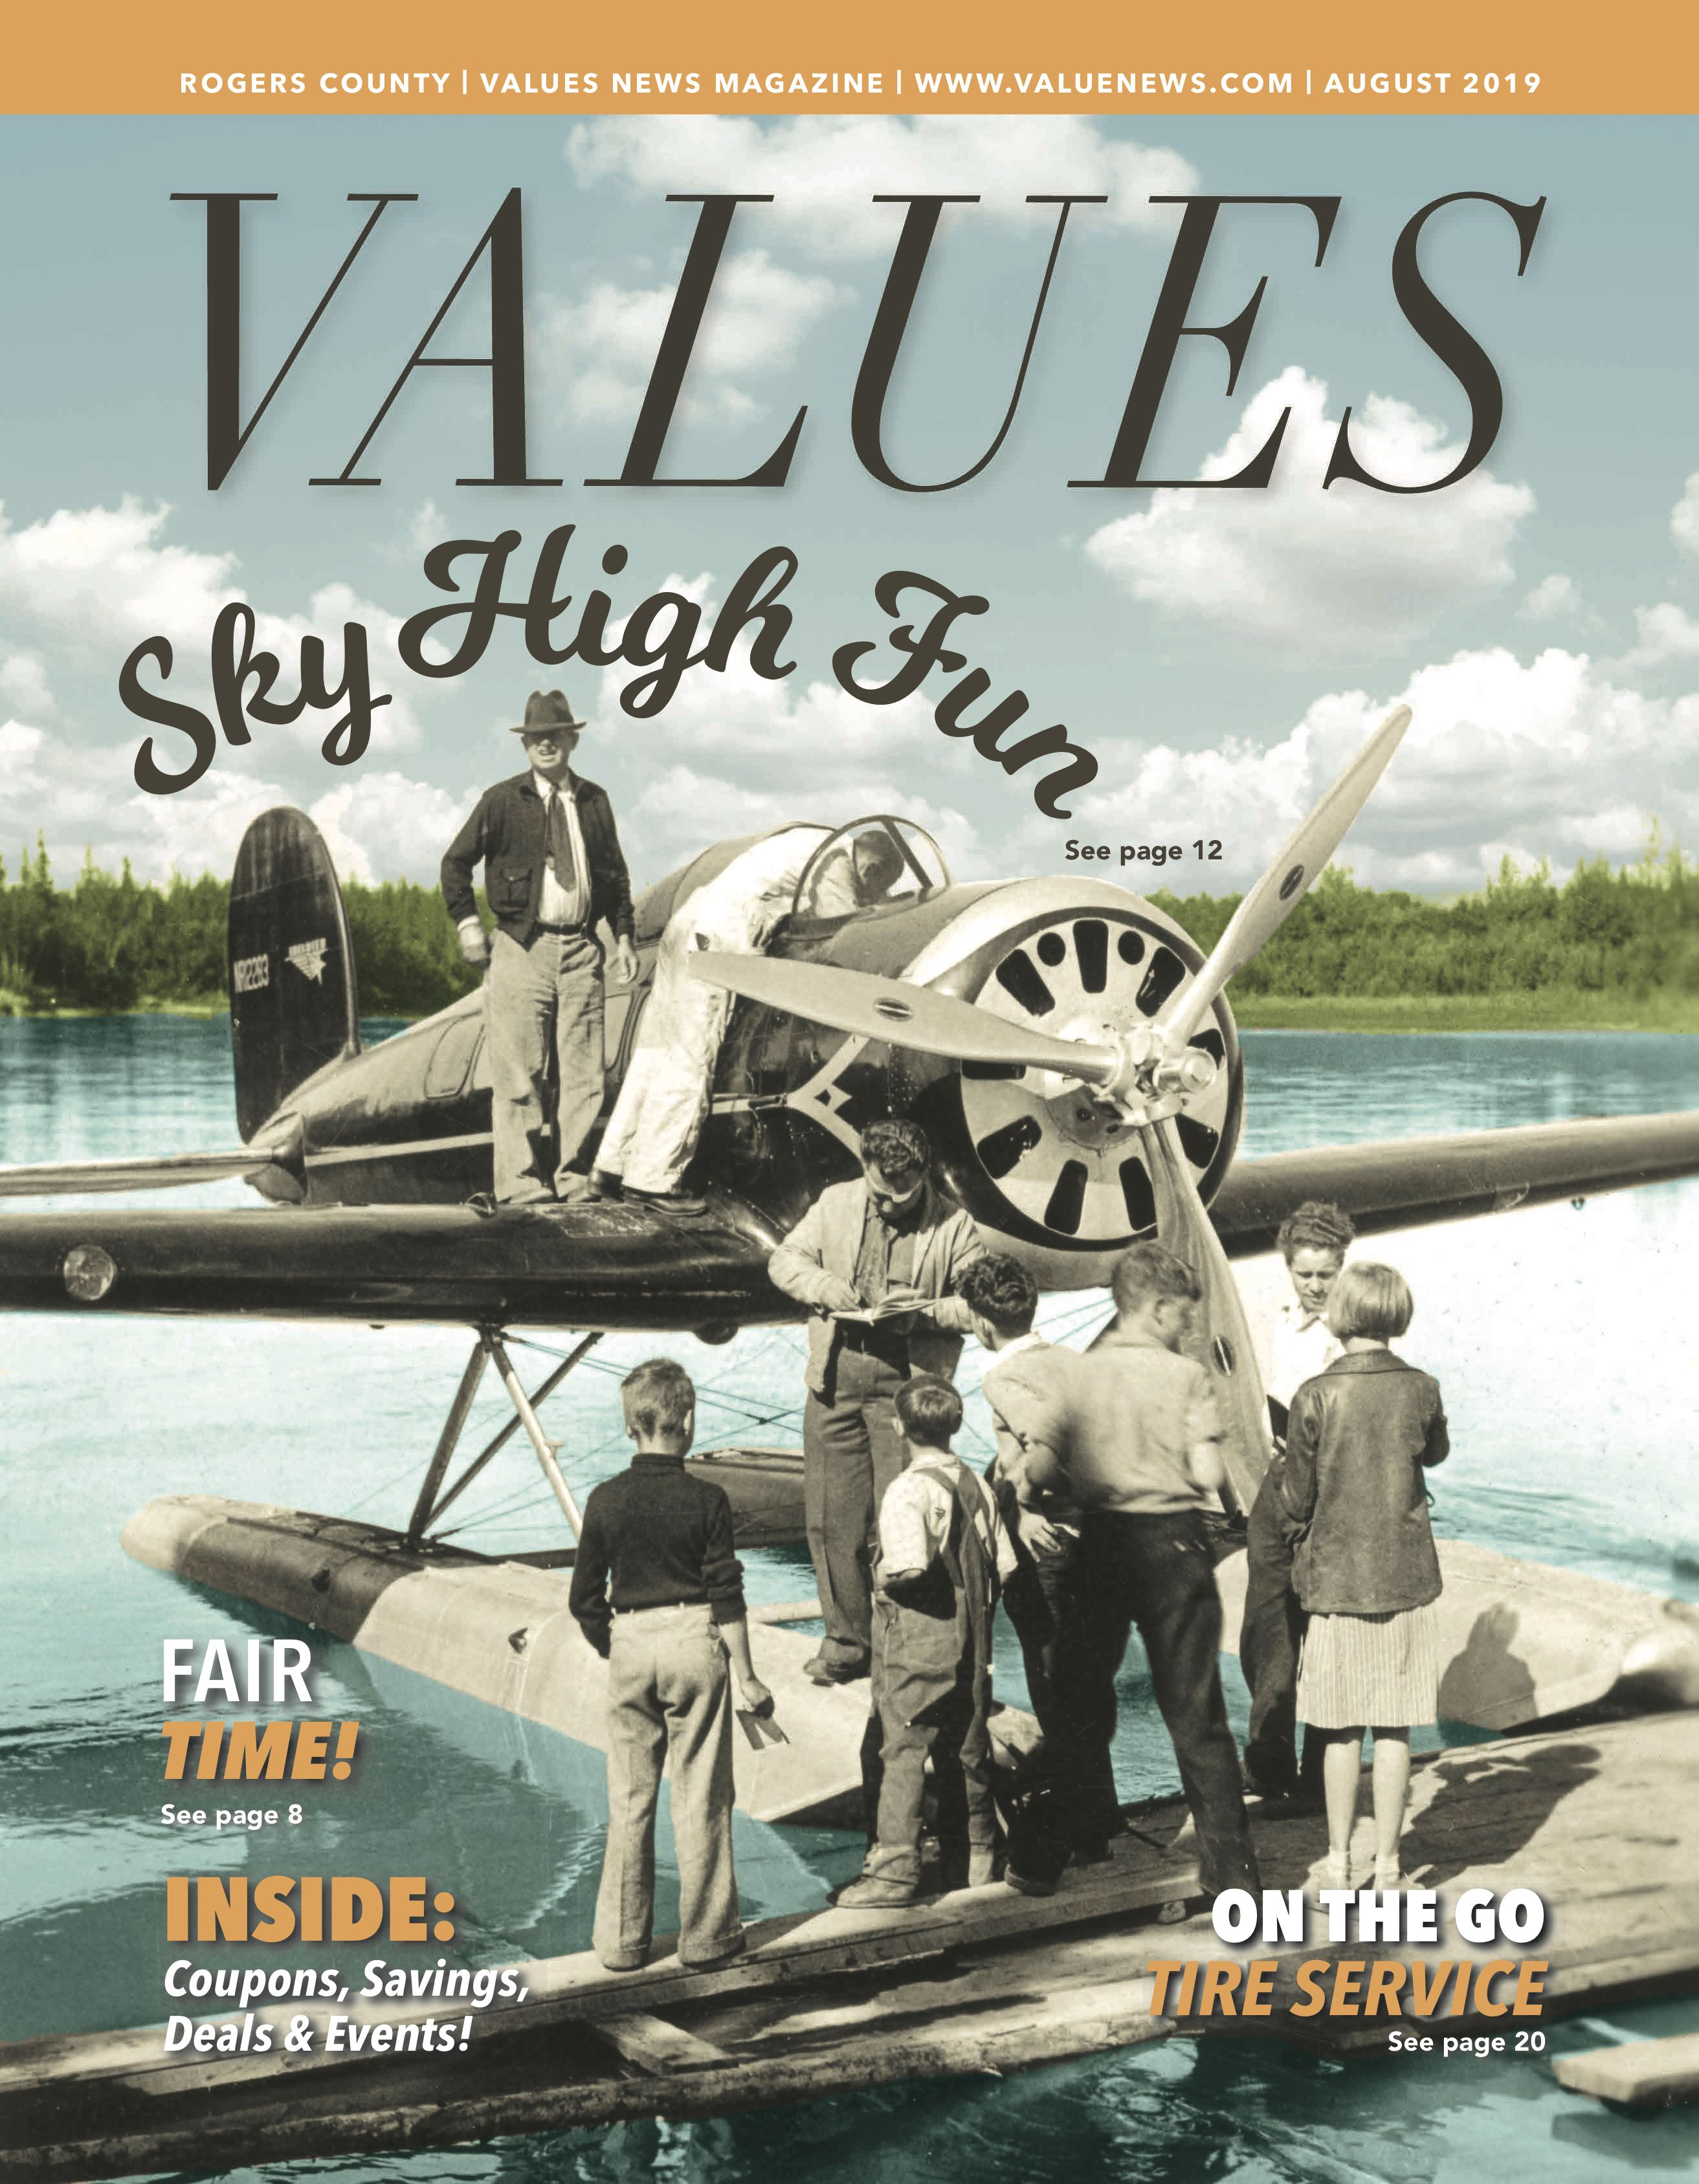 Values August 2019 Rogers County Marketing Solution Local Business Owner News Magazines